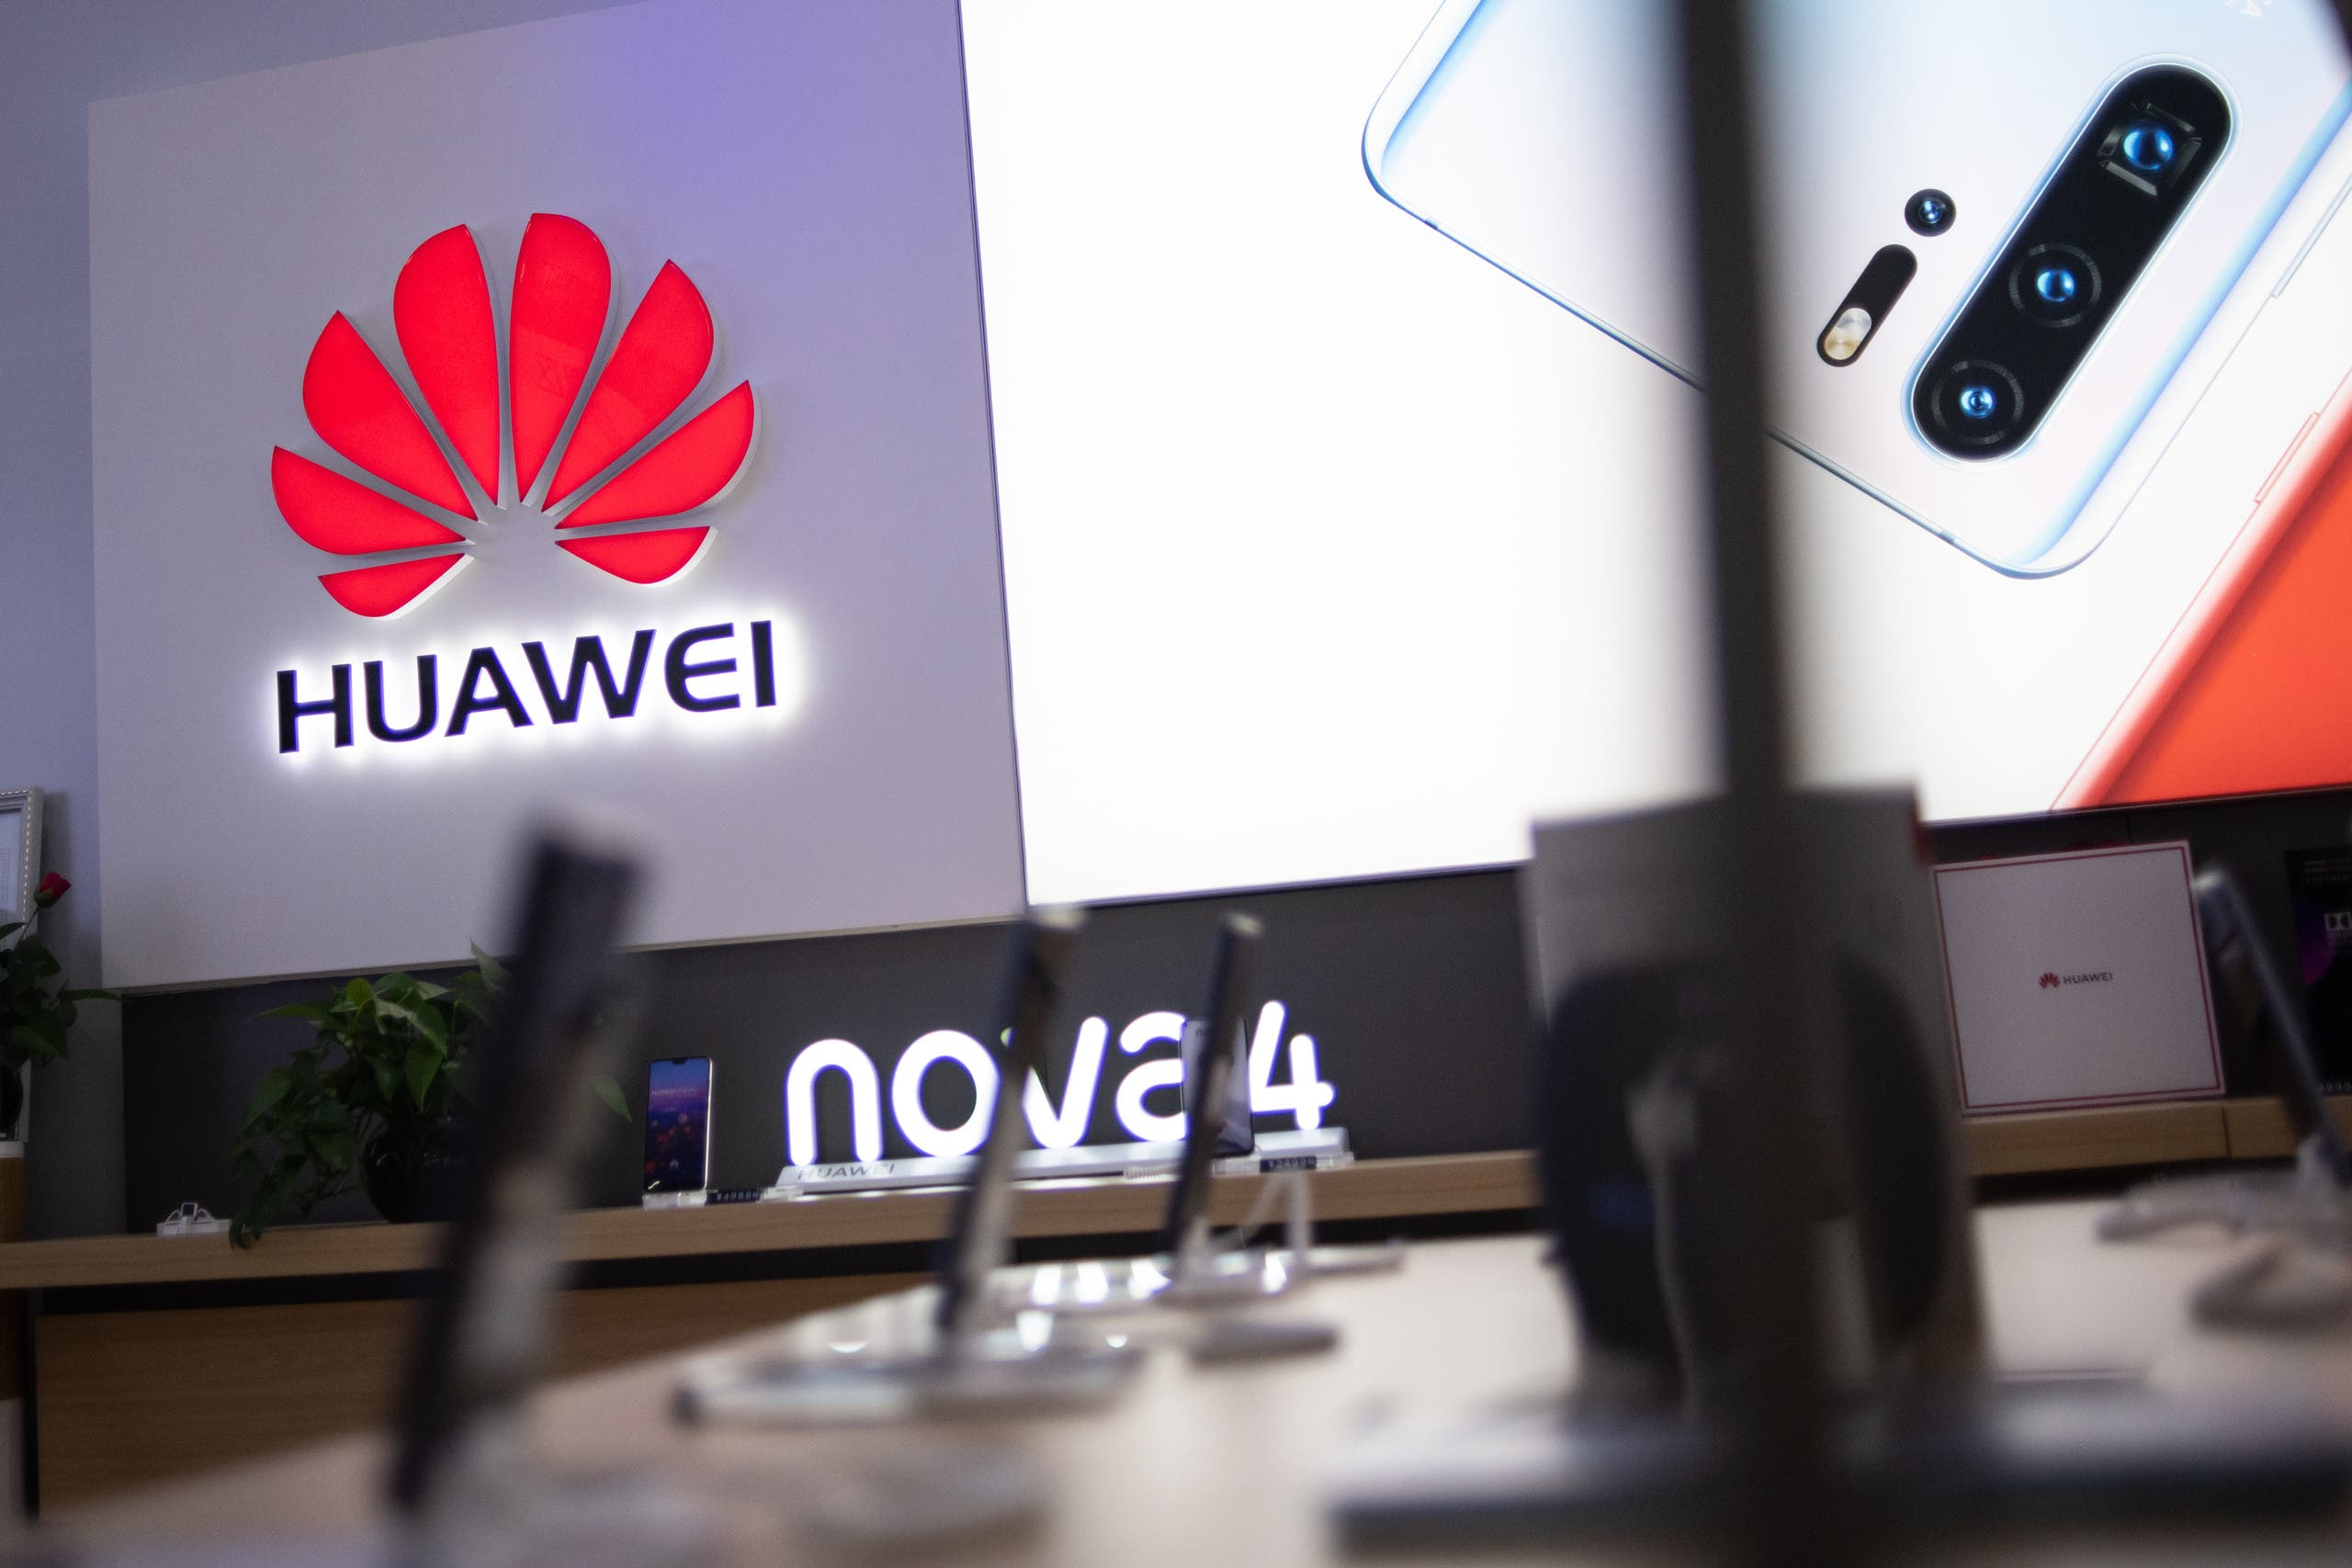 In this photo taken on May 27, 2019, a Huawei logo is displayed at a retail store in Beijing. China is digging in for a tough period of deteriorating ties with the United States, fanning the flames of patriotism with Korean War films, a viral song on the trade war, and editorials lambasting Washington. (File photo)